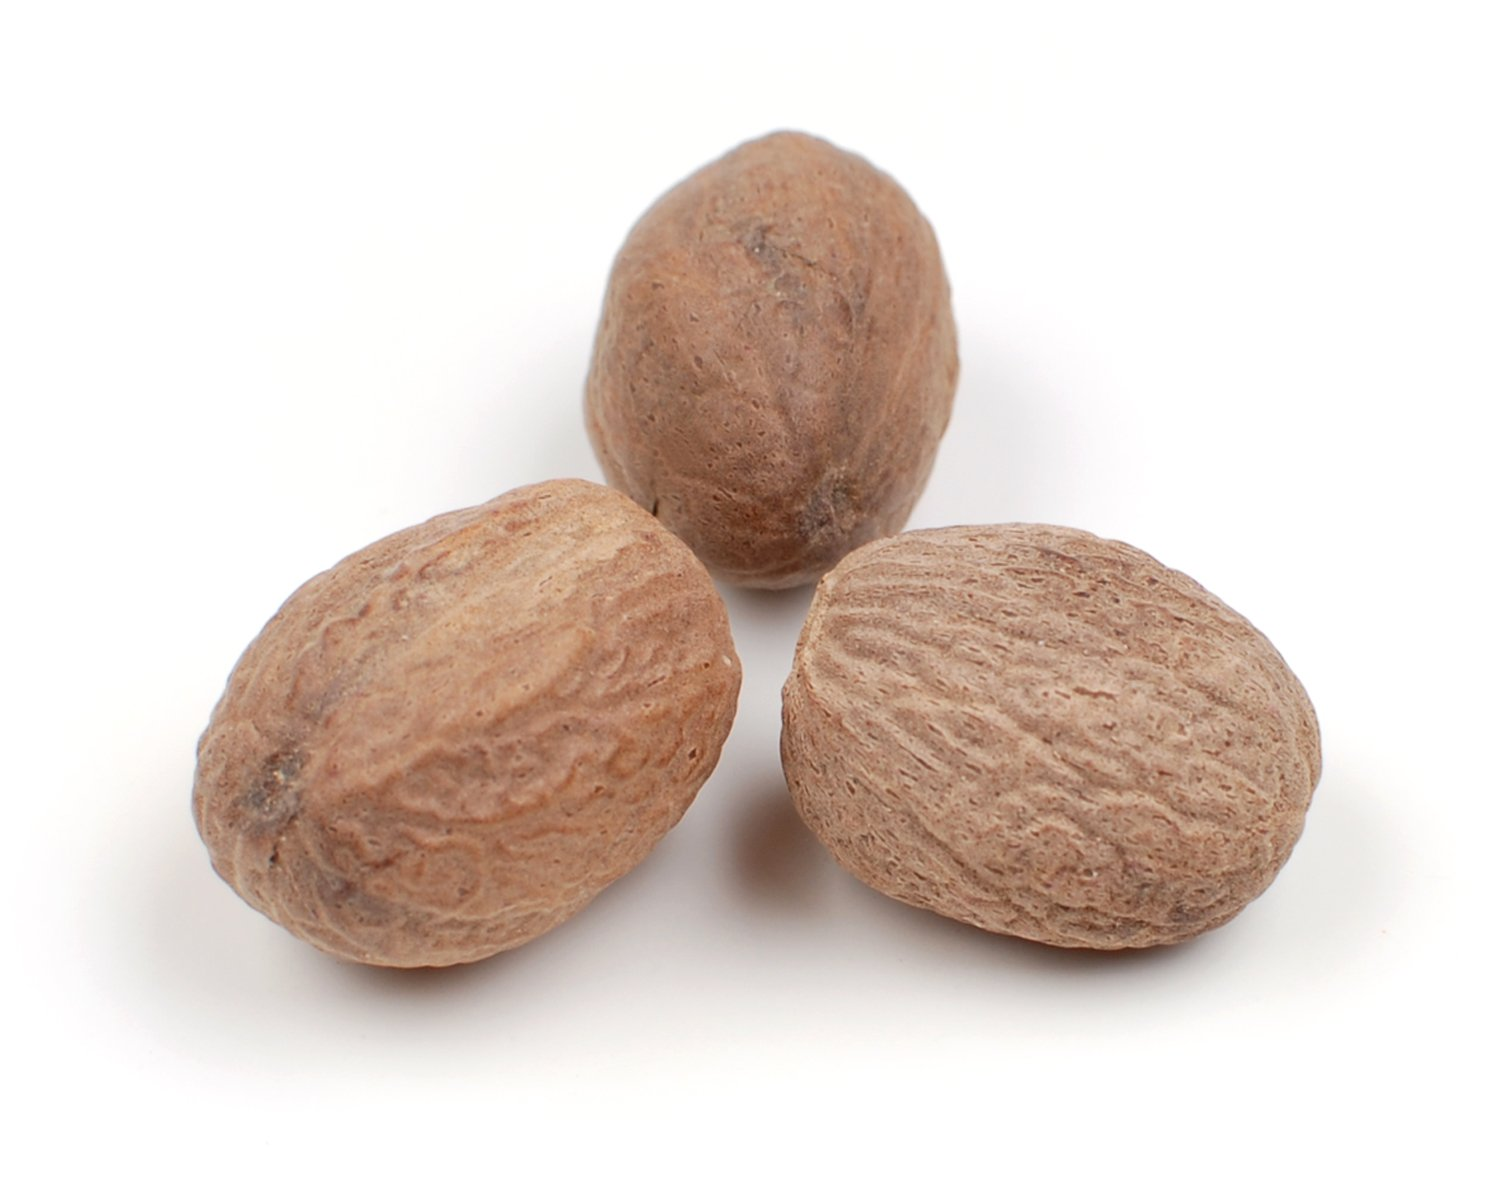 Nutmeg, Whole - 50 Lb Bag / Box Each by Woodland Ingredients